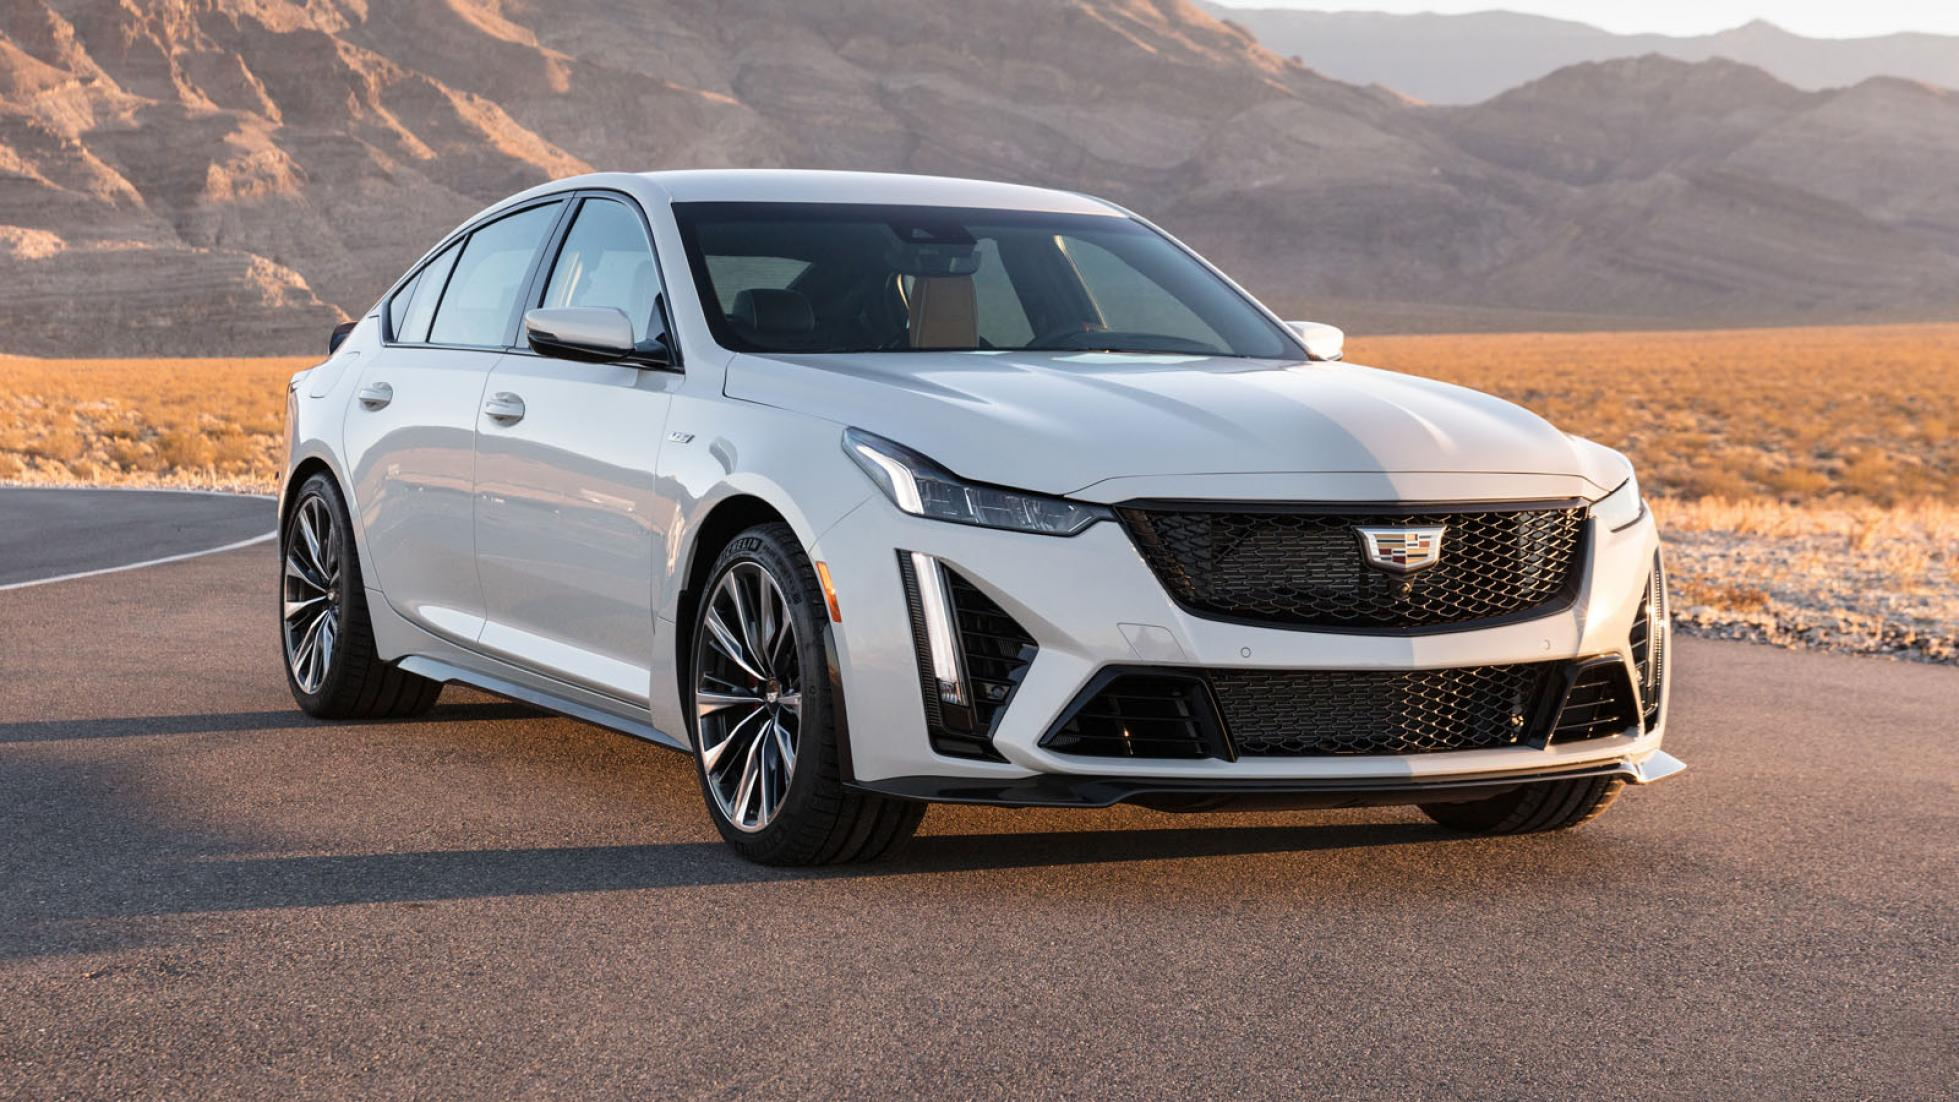 Cadillac CT5-V (white) - Outdoors